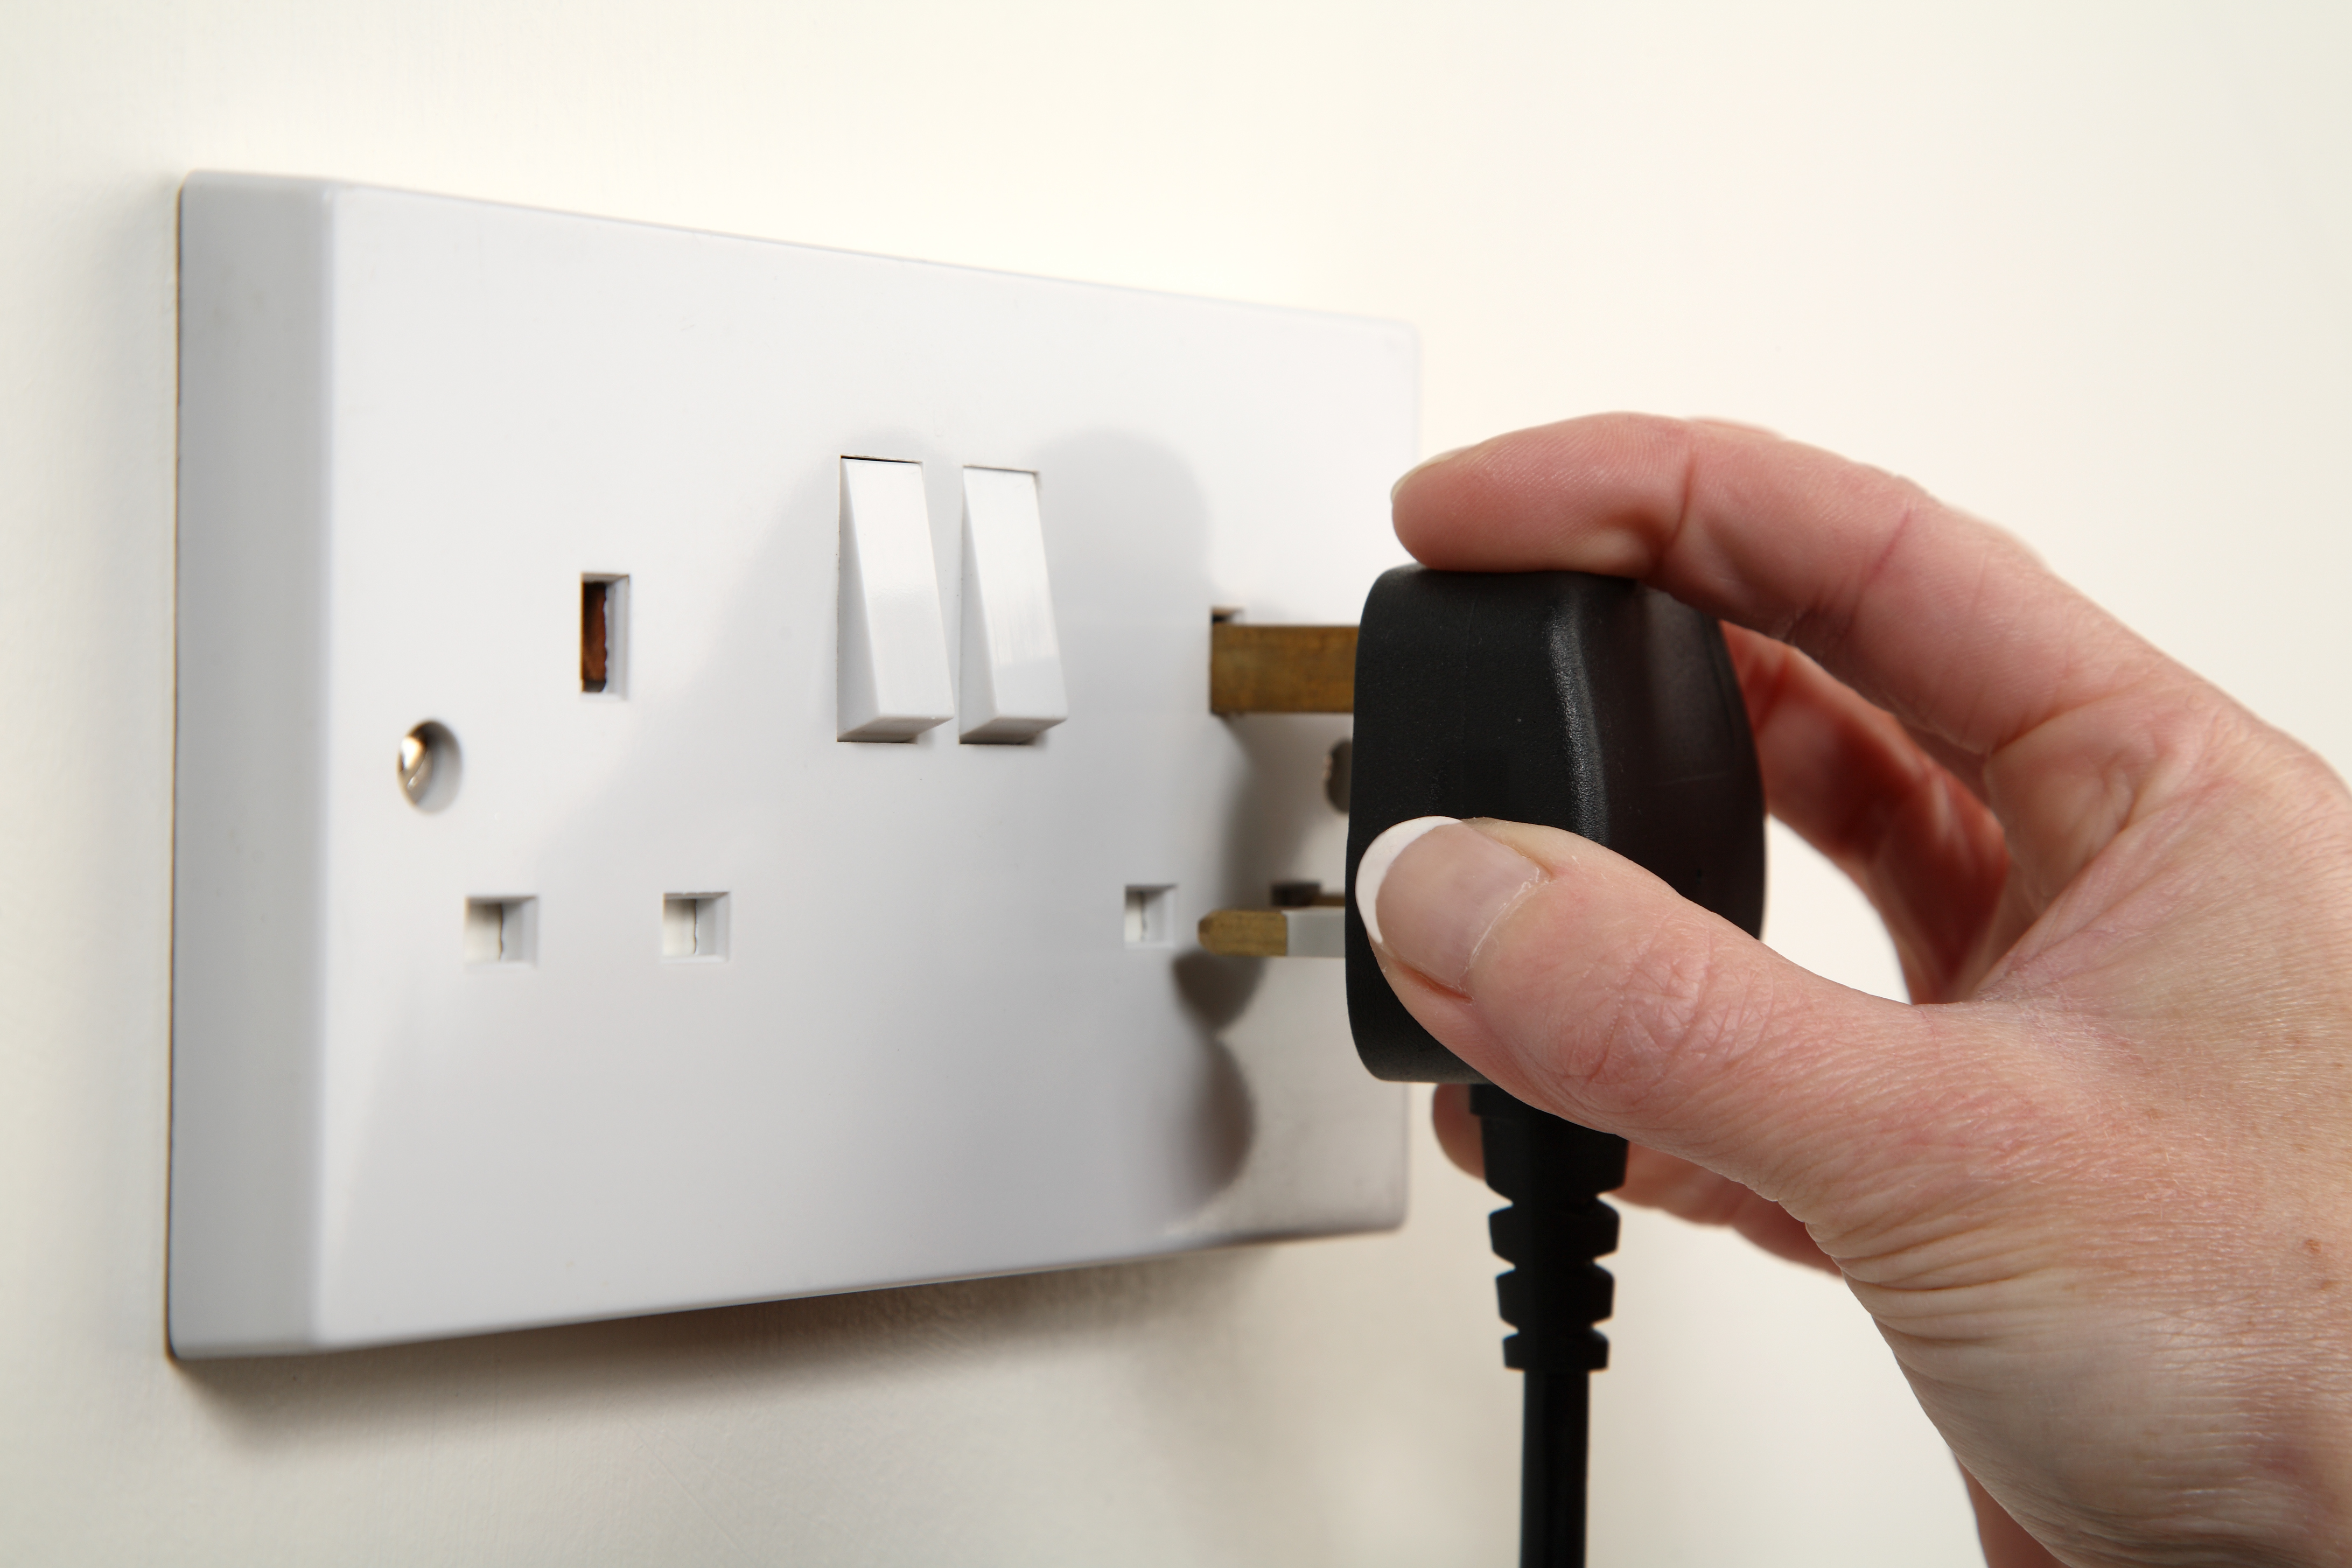 I have difficulty reaching electric sockets and plugs